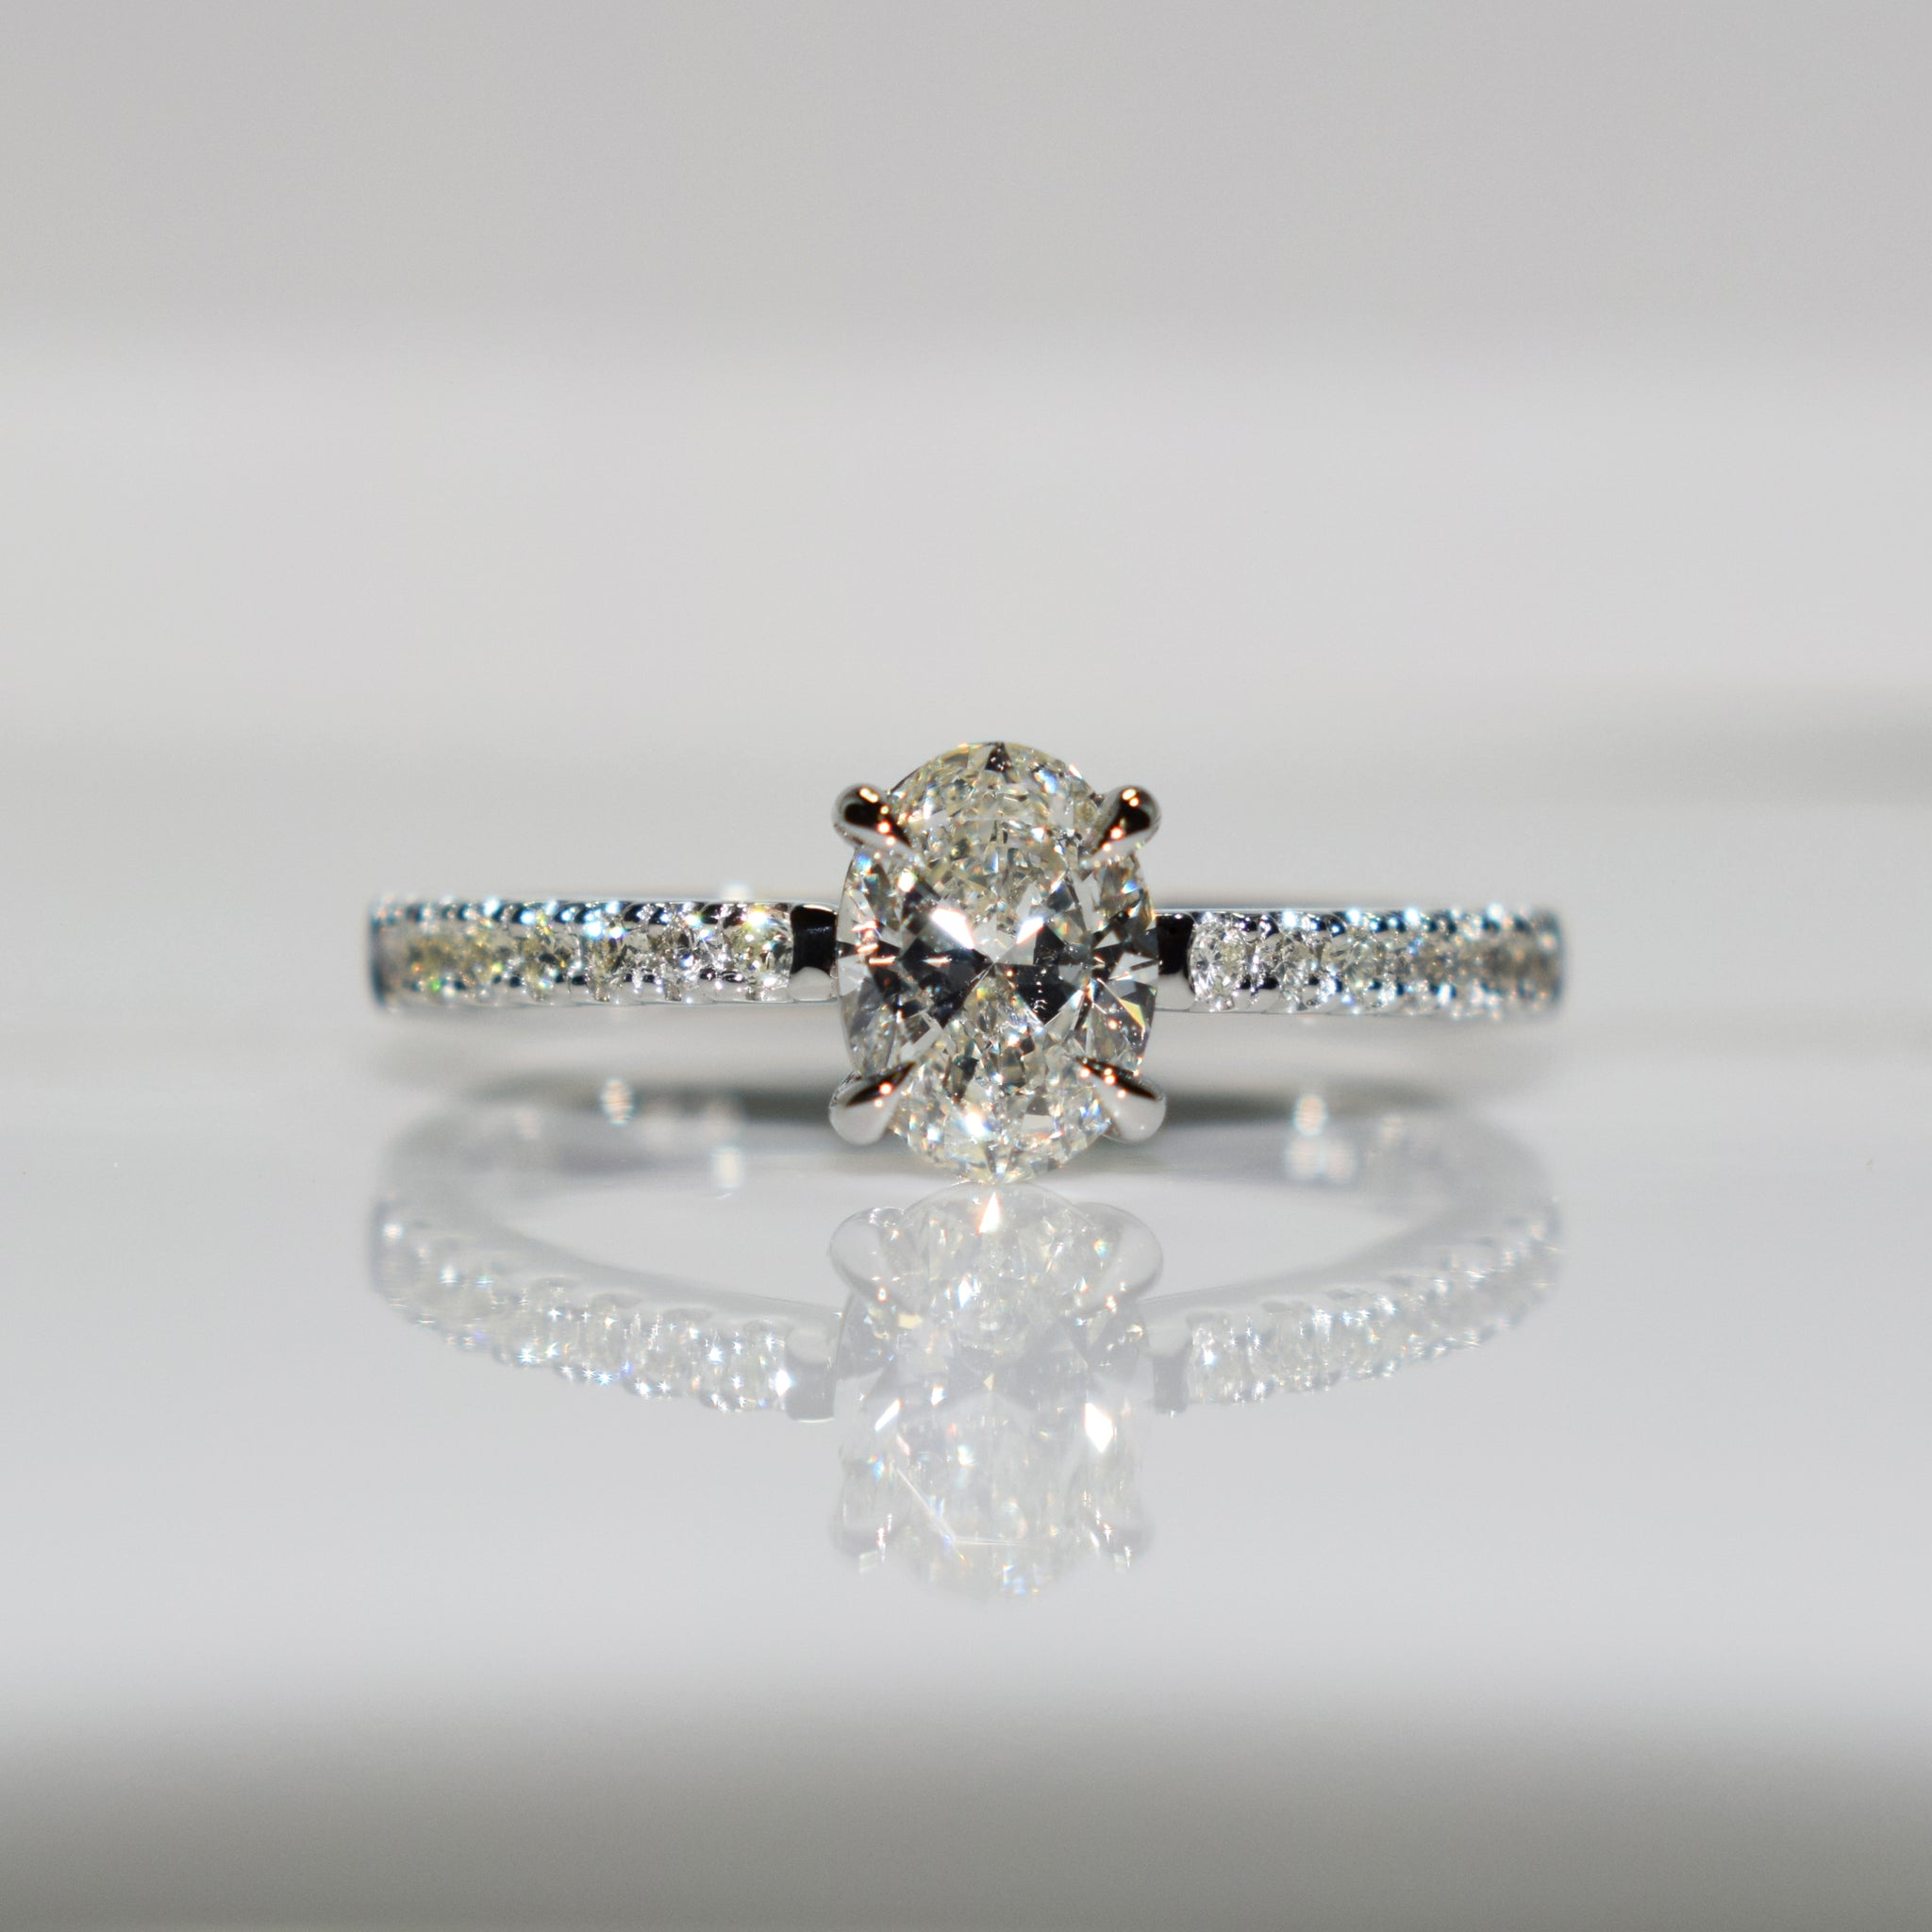 Oval diamond solitaire set with eagle claws in platinum